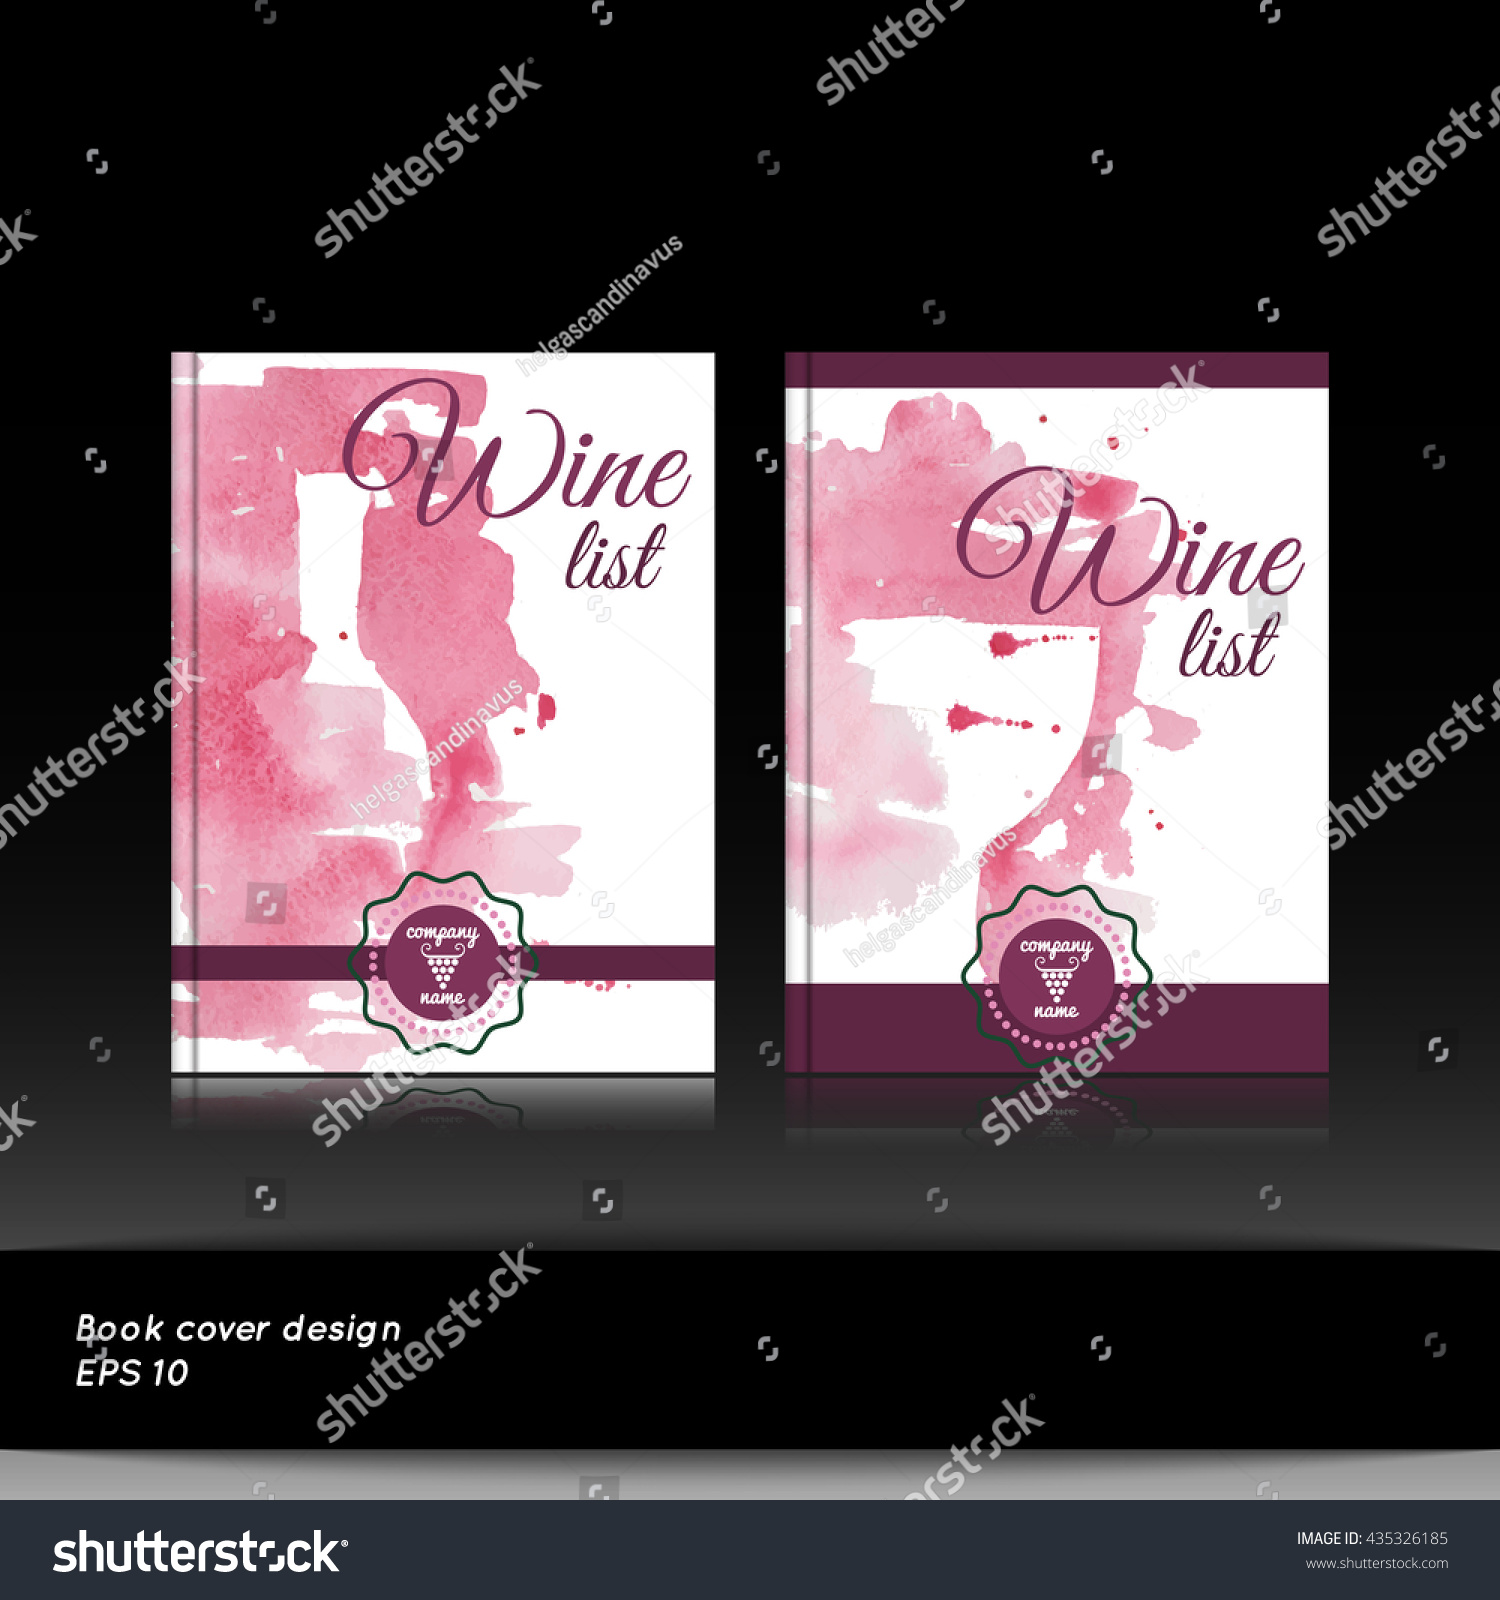 Wine List Book Menu Cover Template Stock Vector (Royalty Free) 435326185